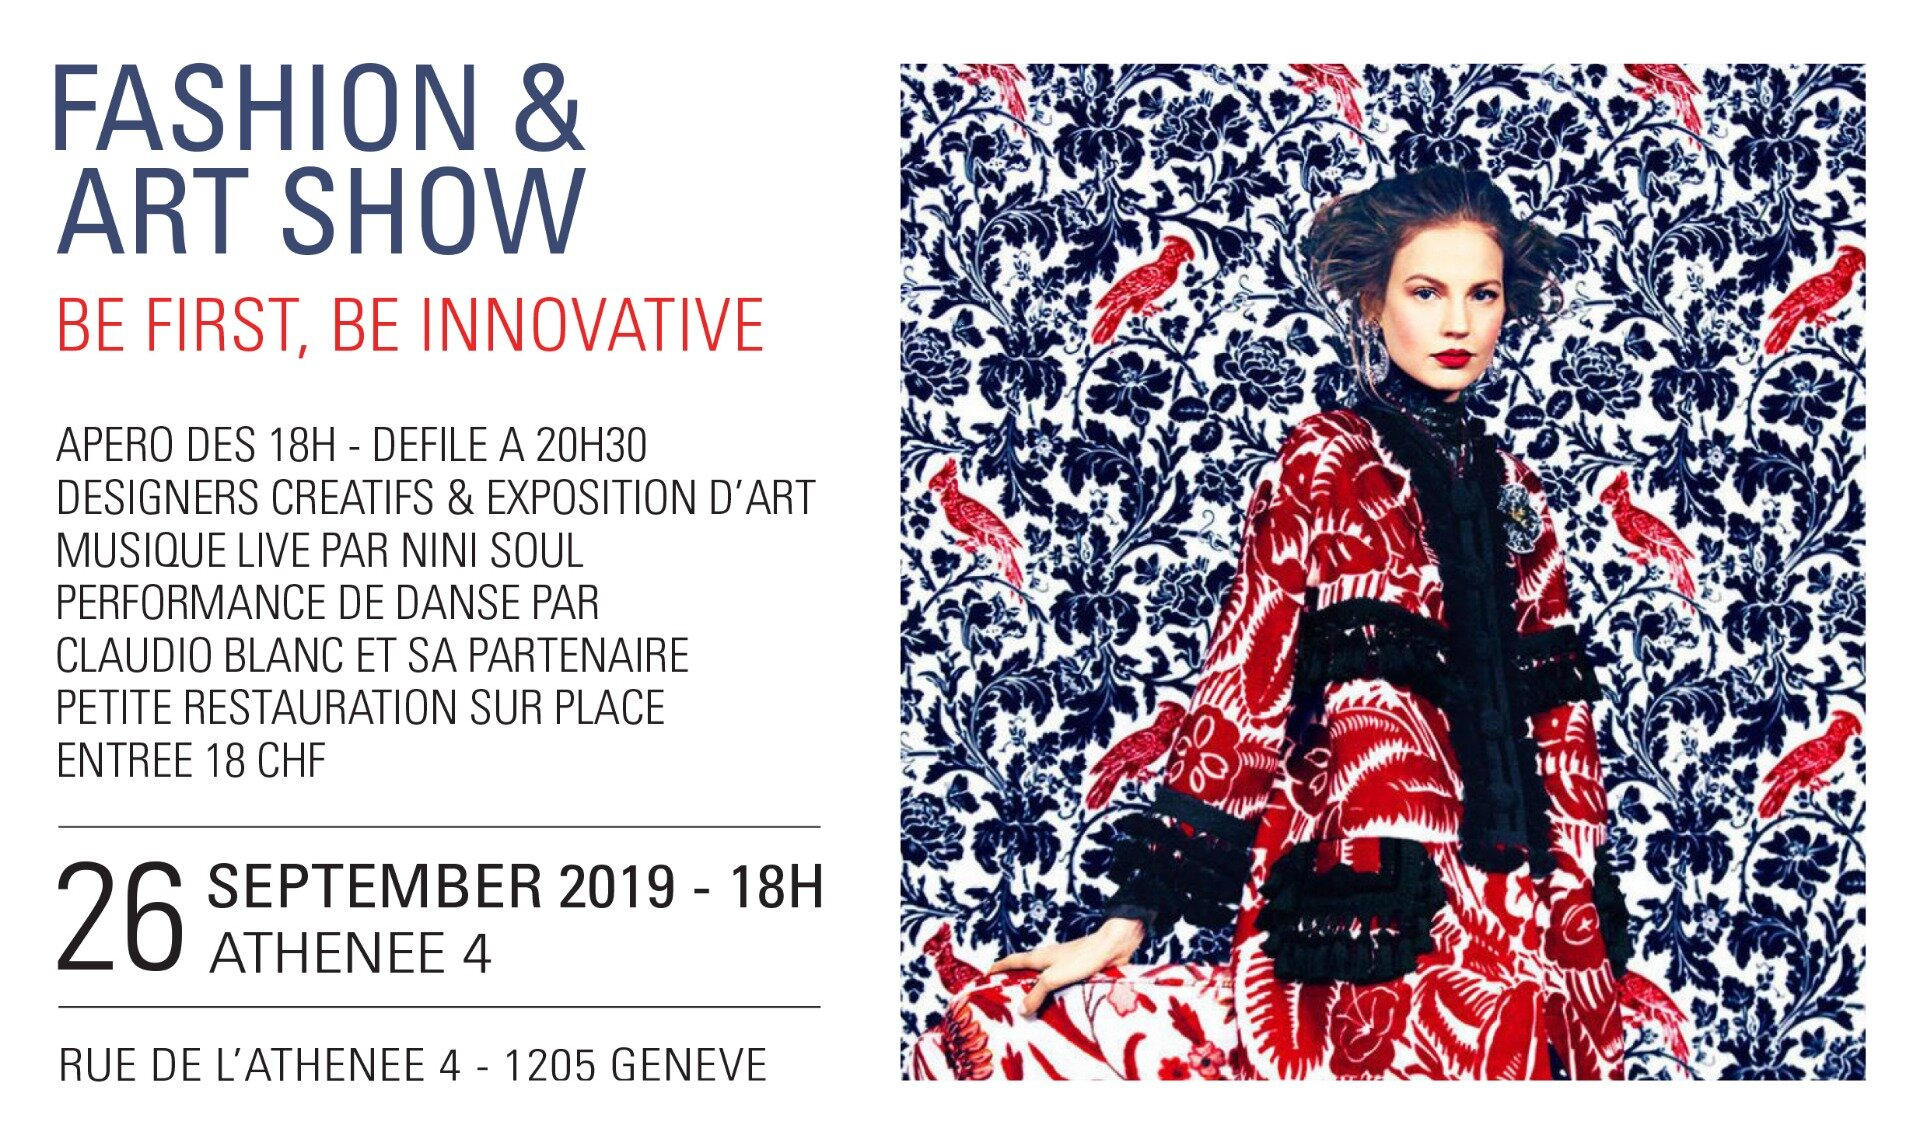 B LOUNGE ART UNVEILS ANNICK GOEKE & CAROLE GENIES DURING THIS EVENT